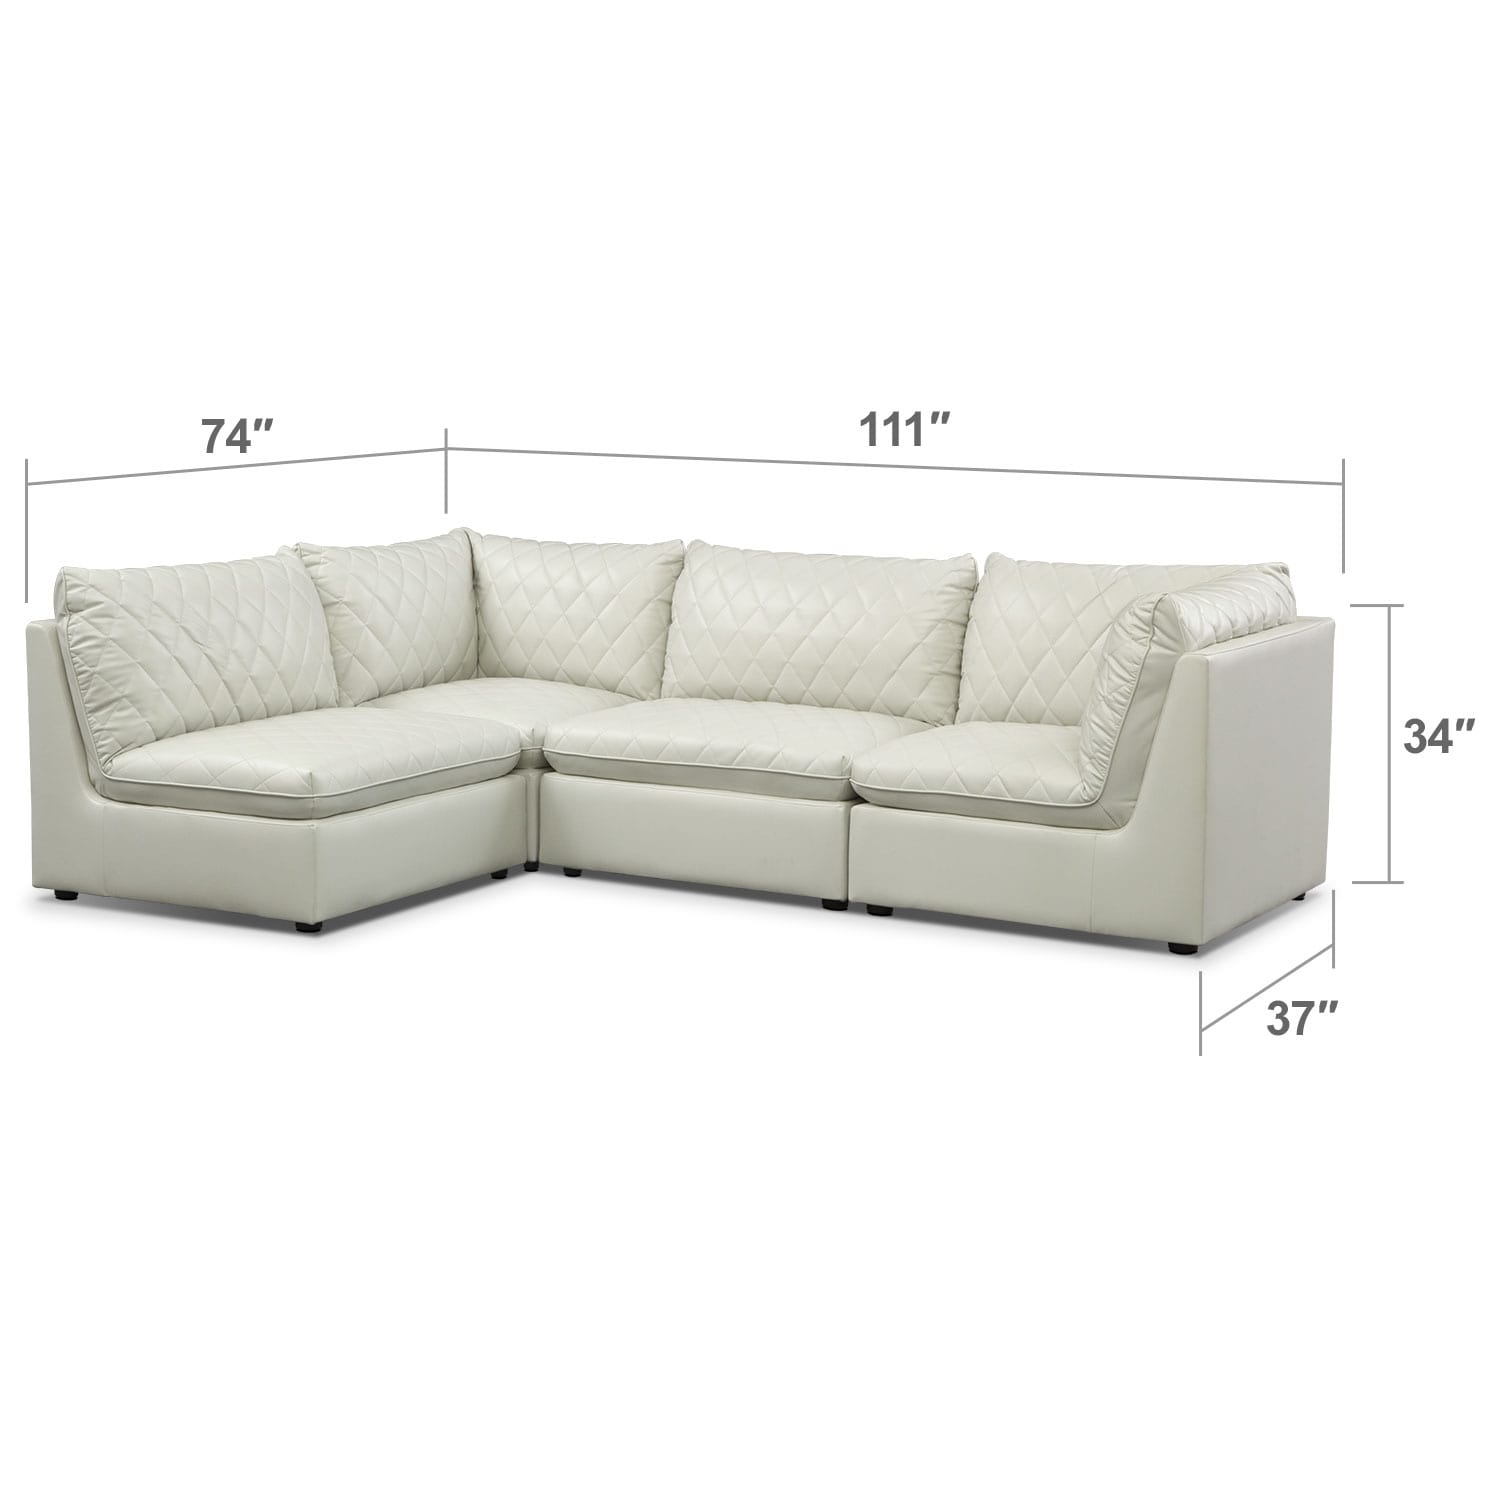 Living Room Furniture - Coco Mist 4 Pc. Sectional